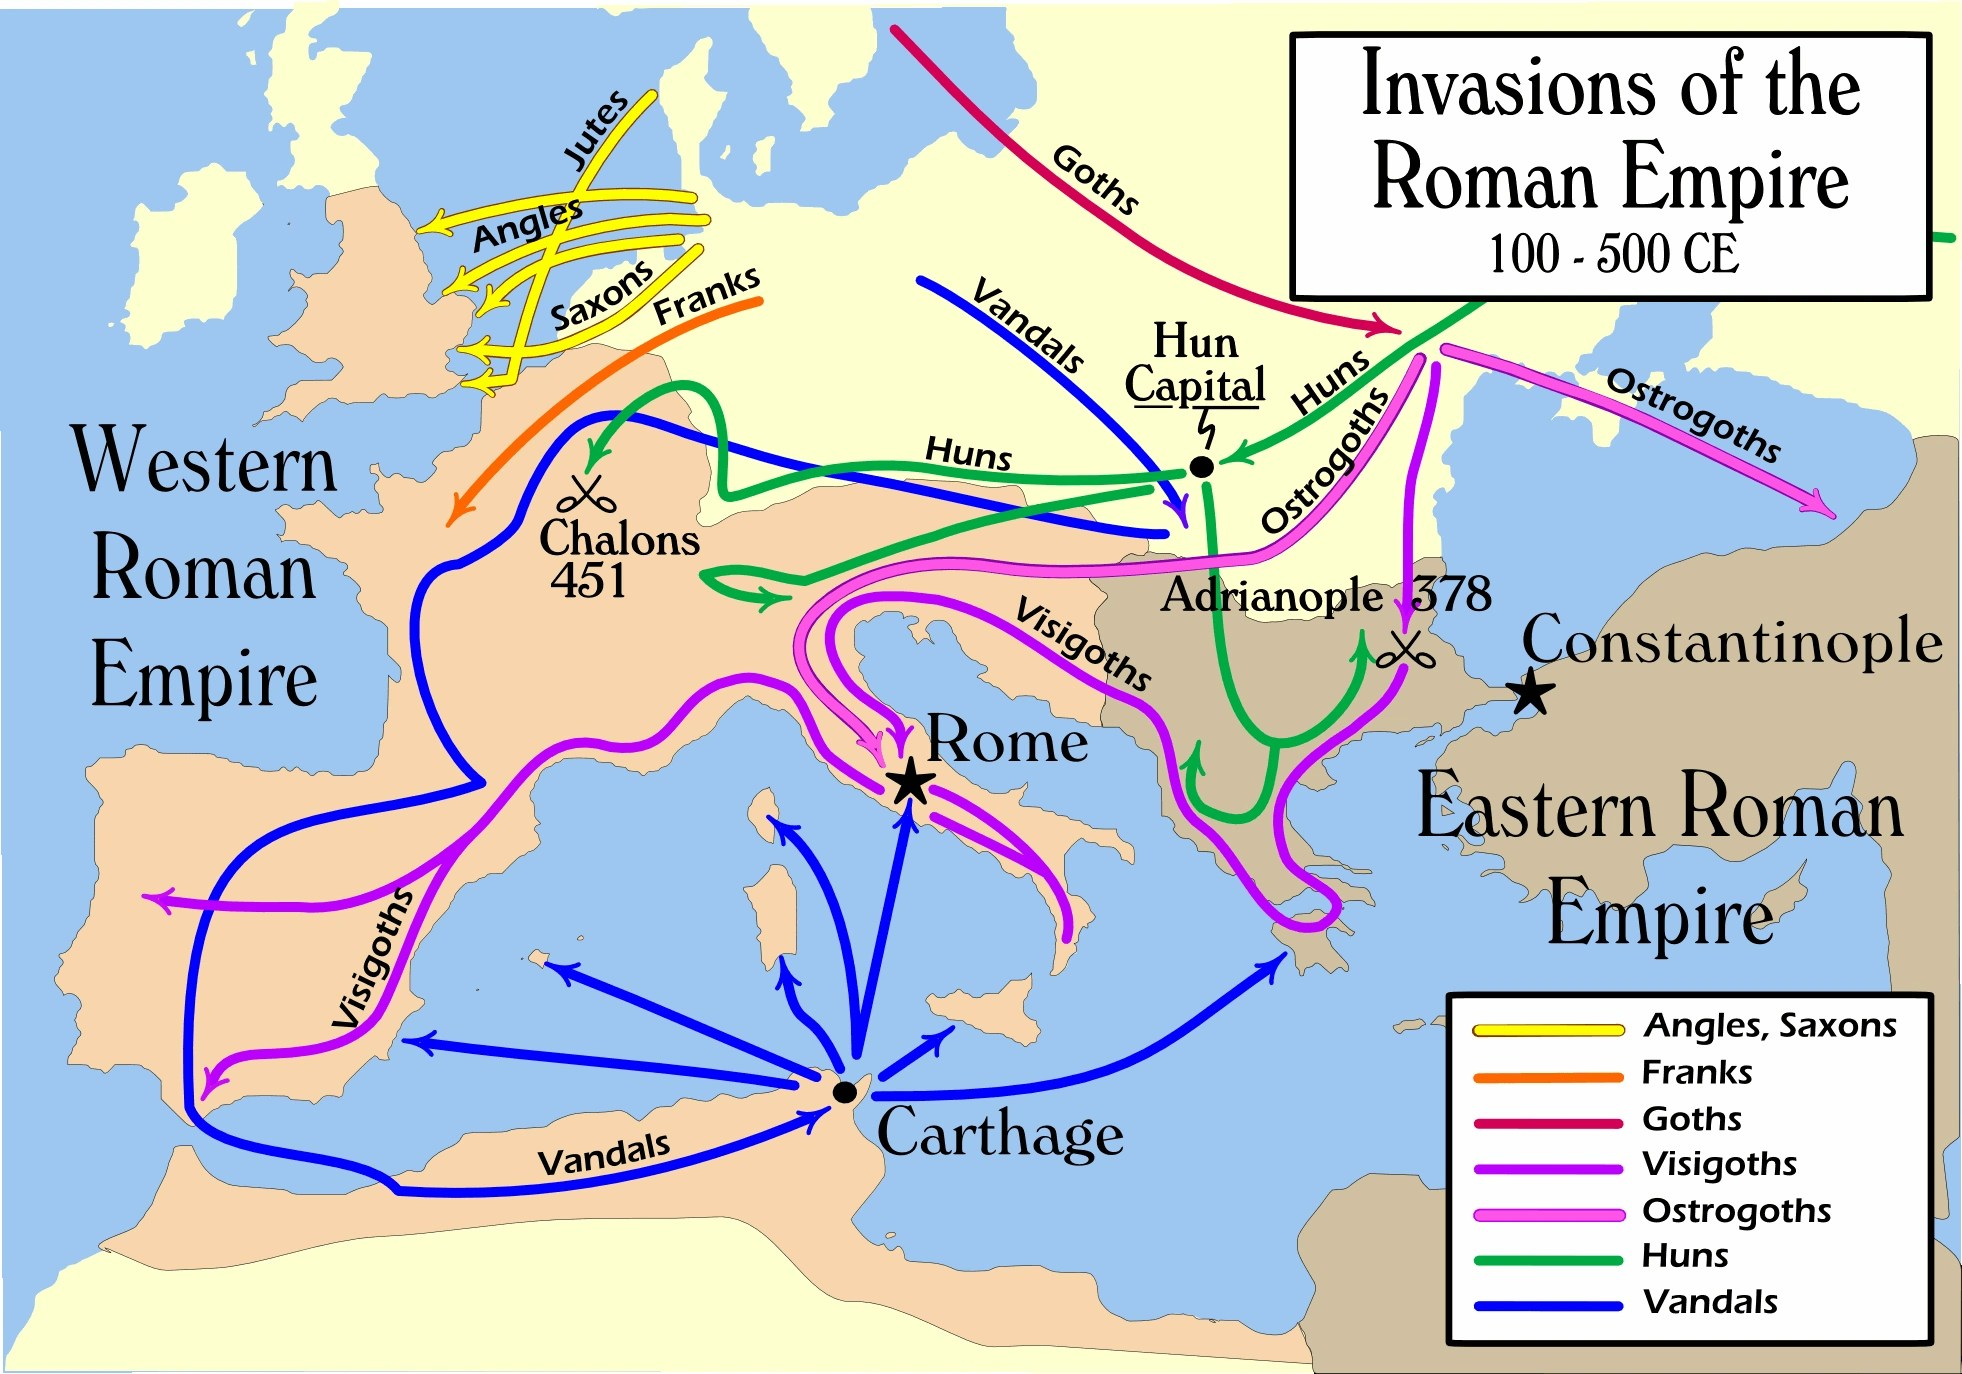 After romans were forced back, other tribes took their place